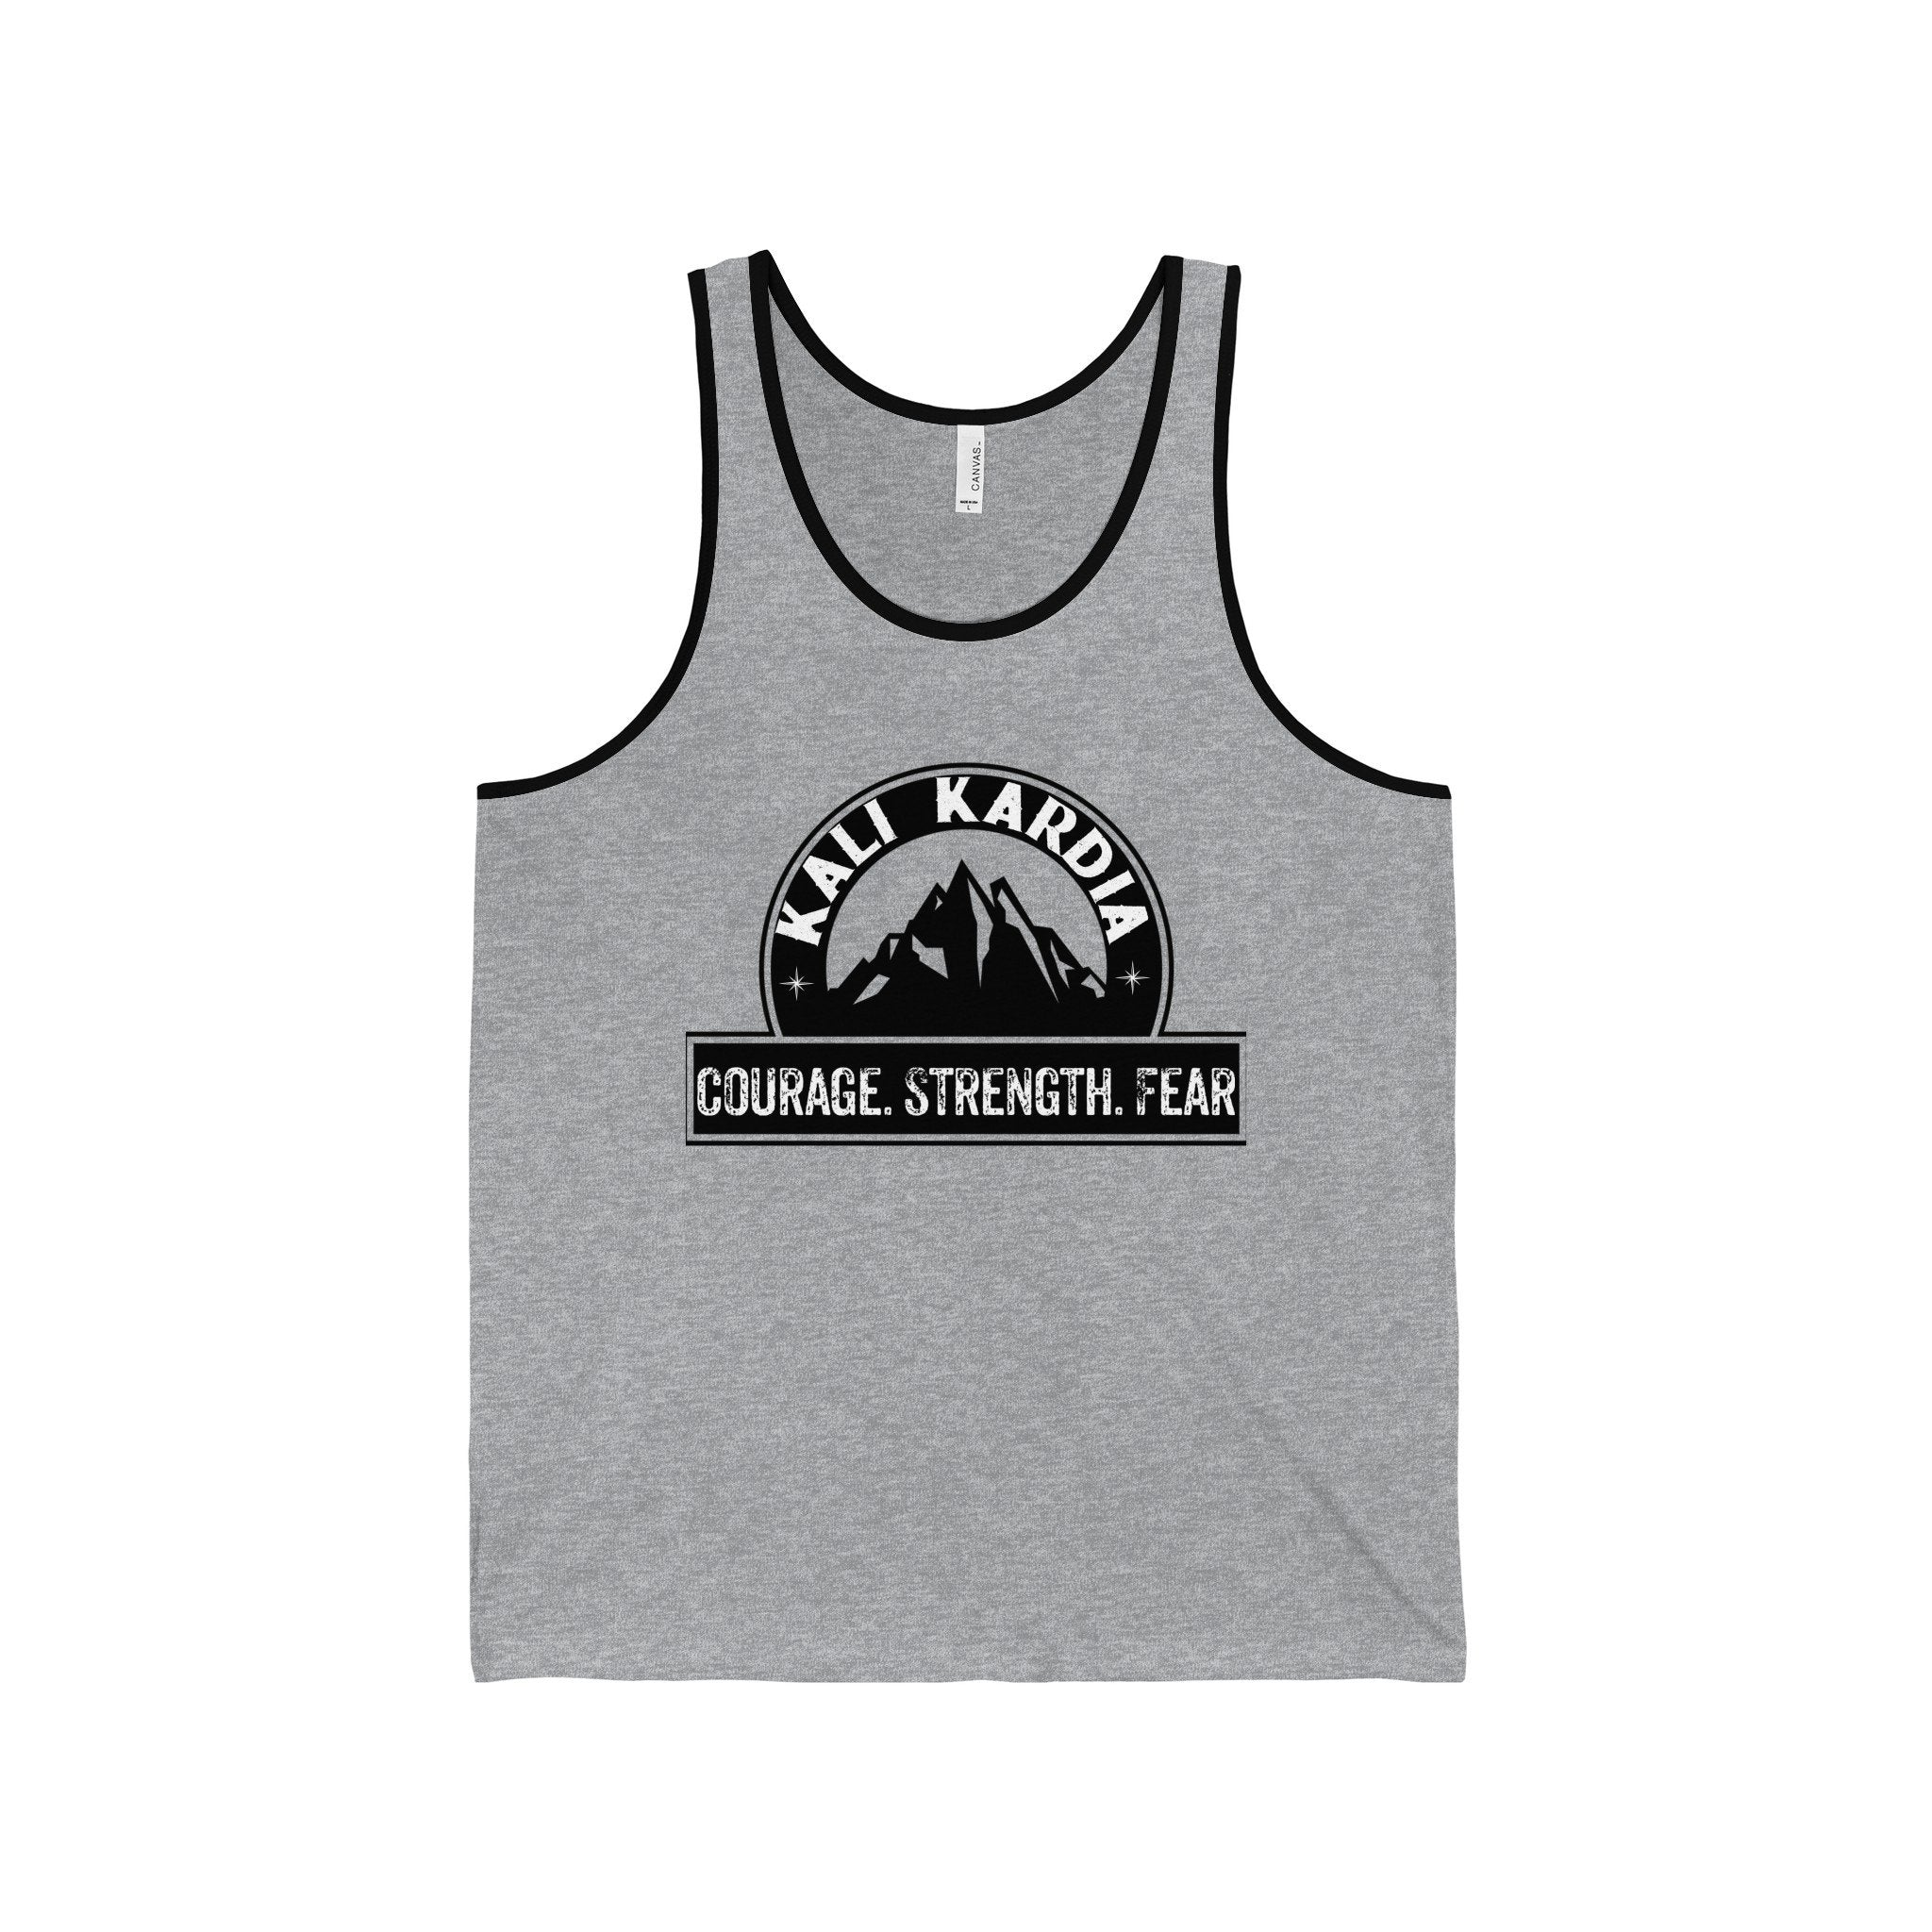 Courage Strength Fear Jersey Tank